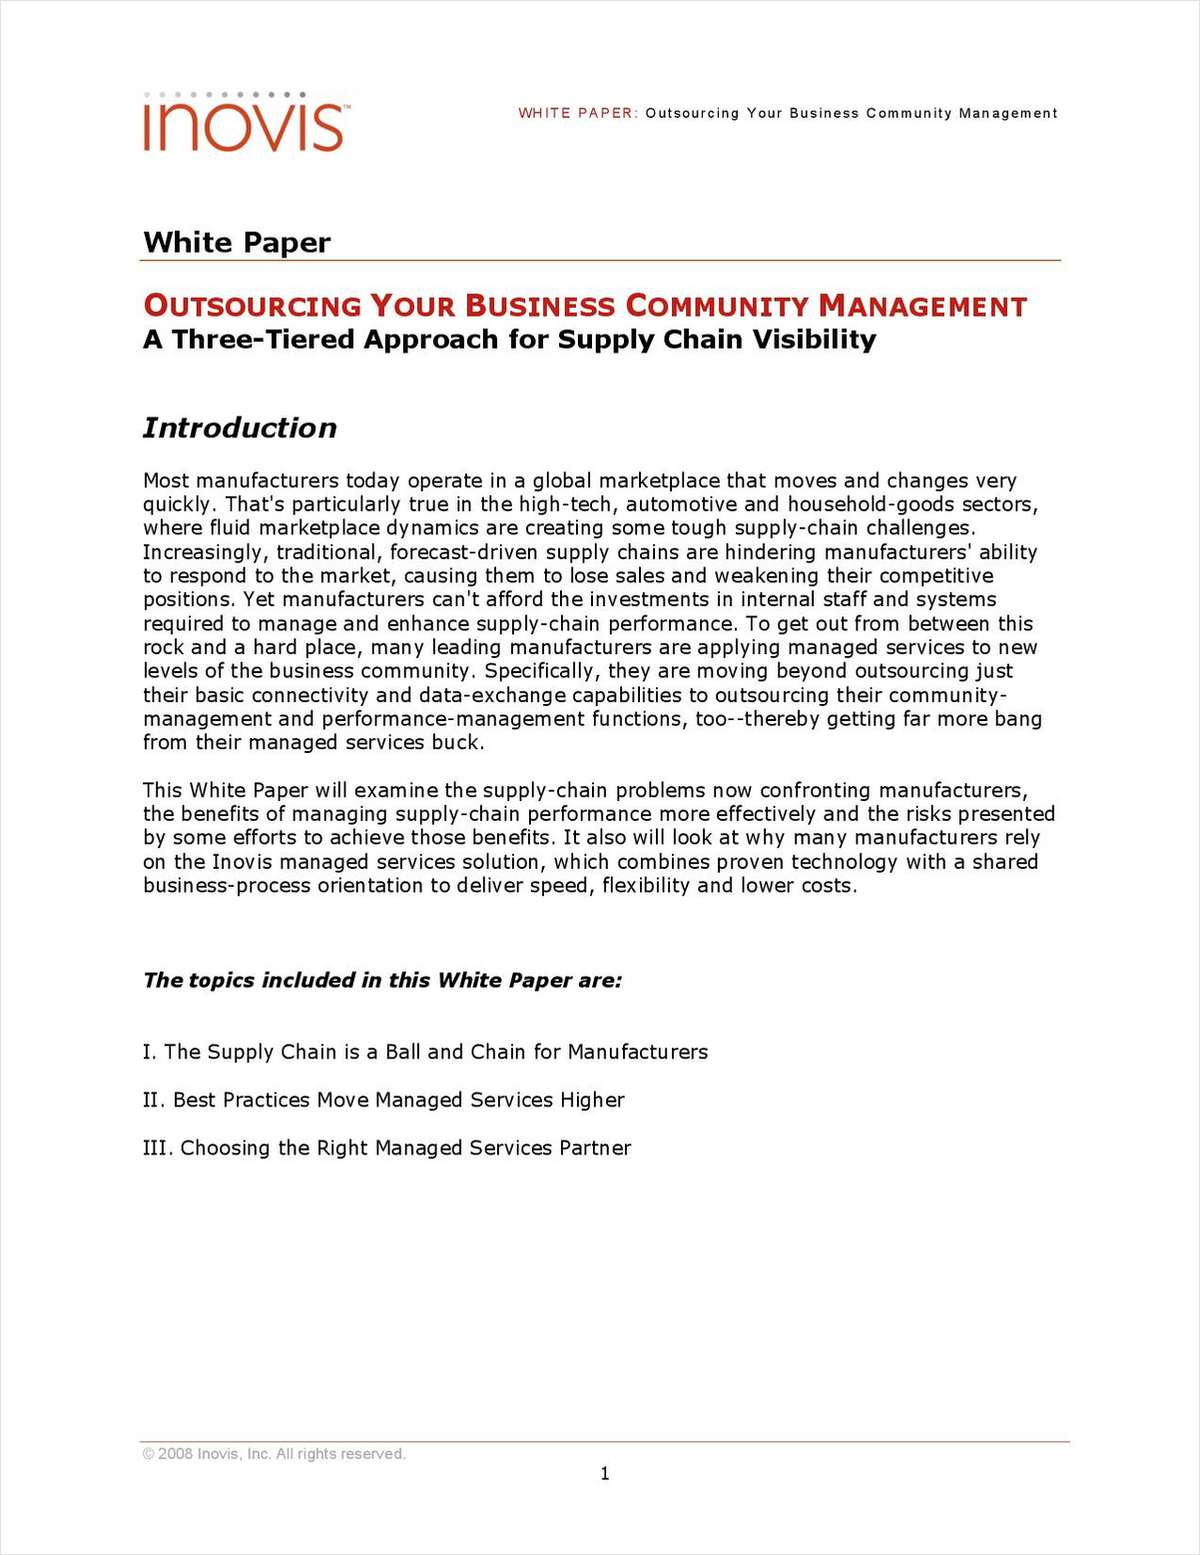 Outsourcing Your Business Community Management: A Three-Tiered Approach for Supply Chain Visibility